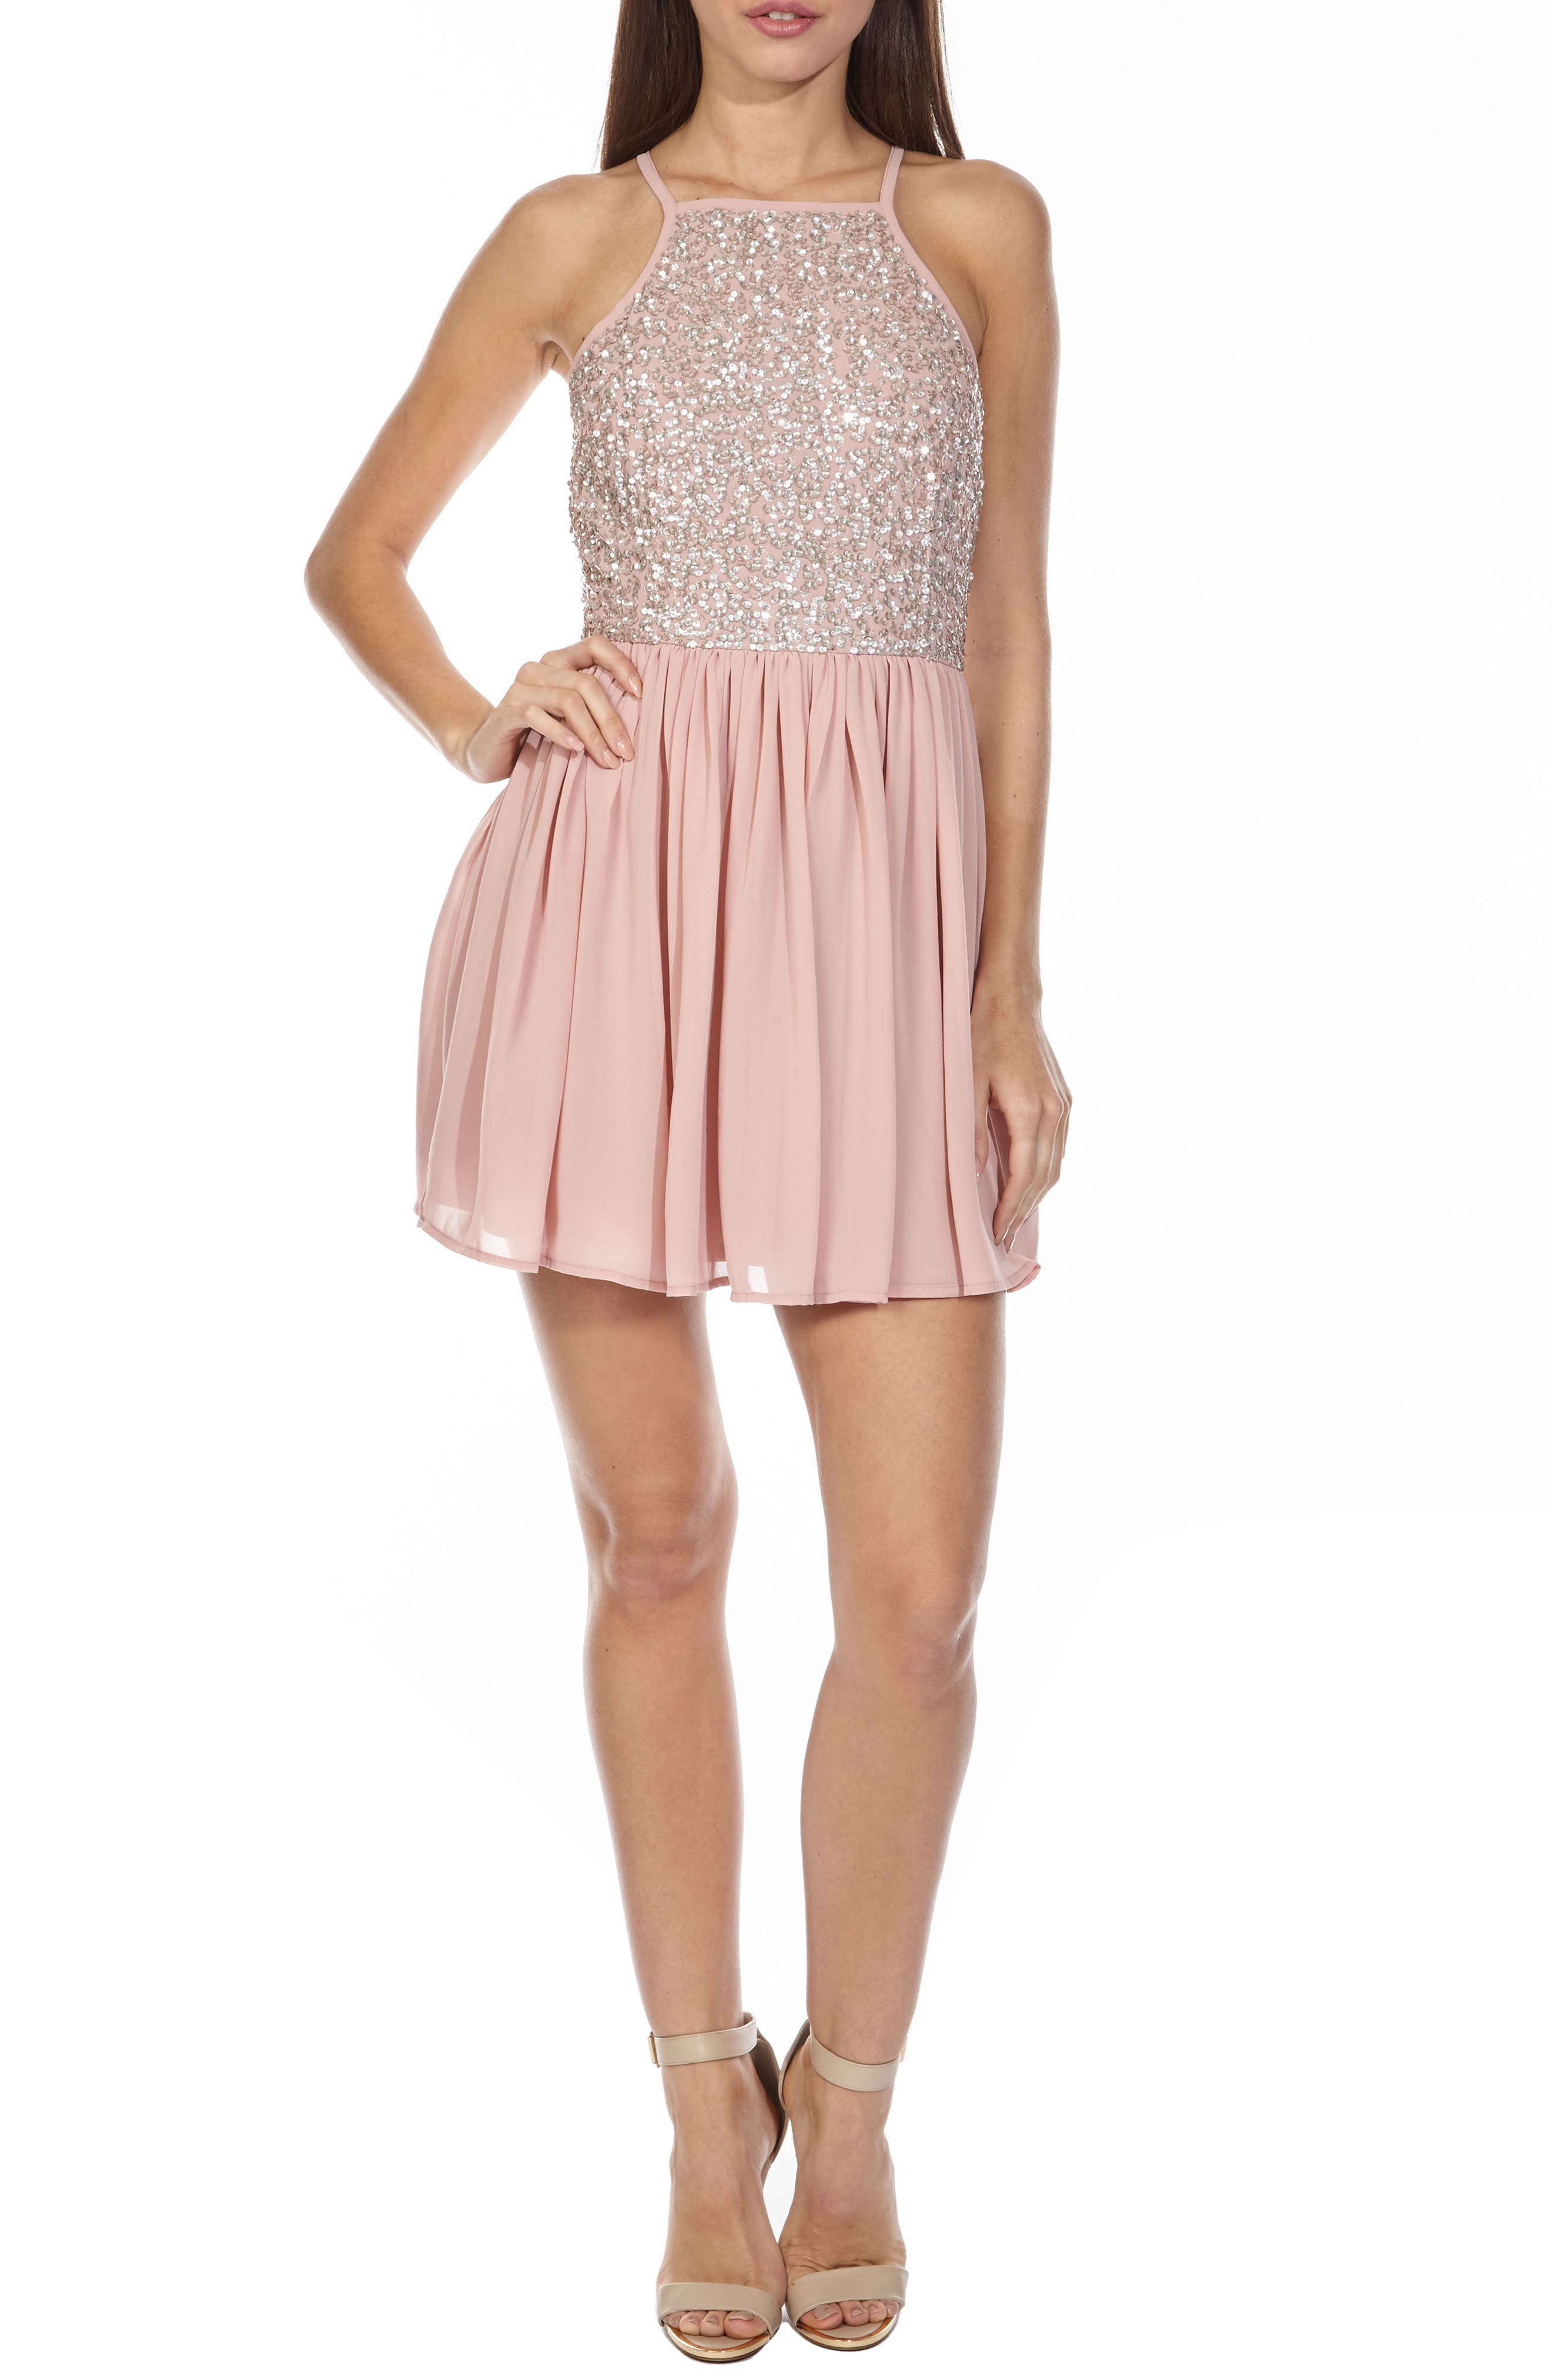 Lace & Beads Sprinkle Sequin Skater Dress